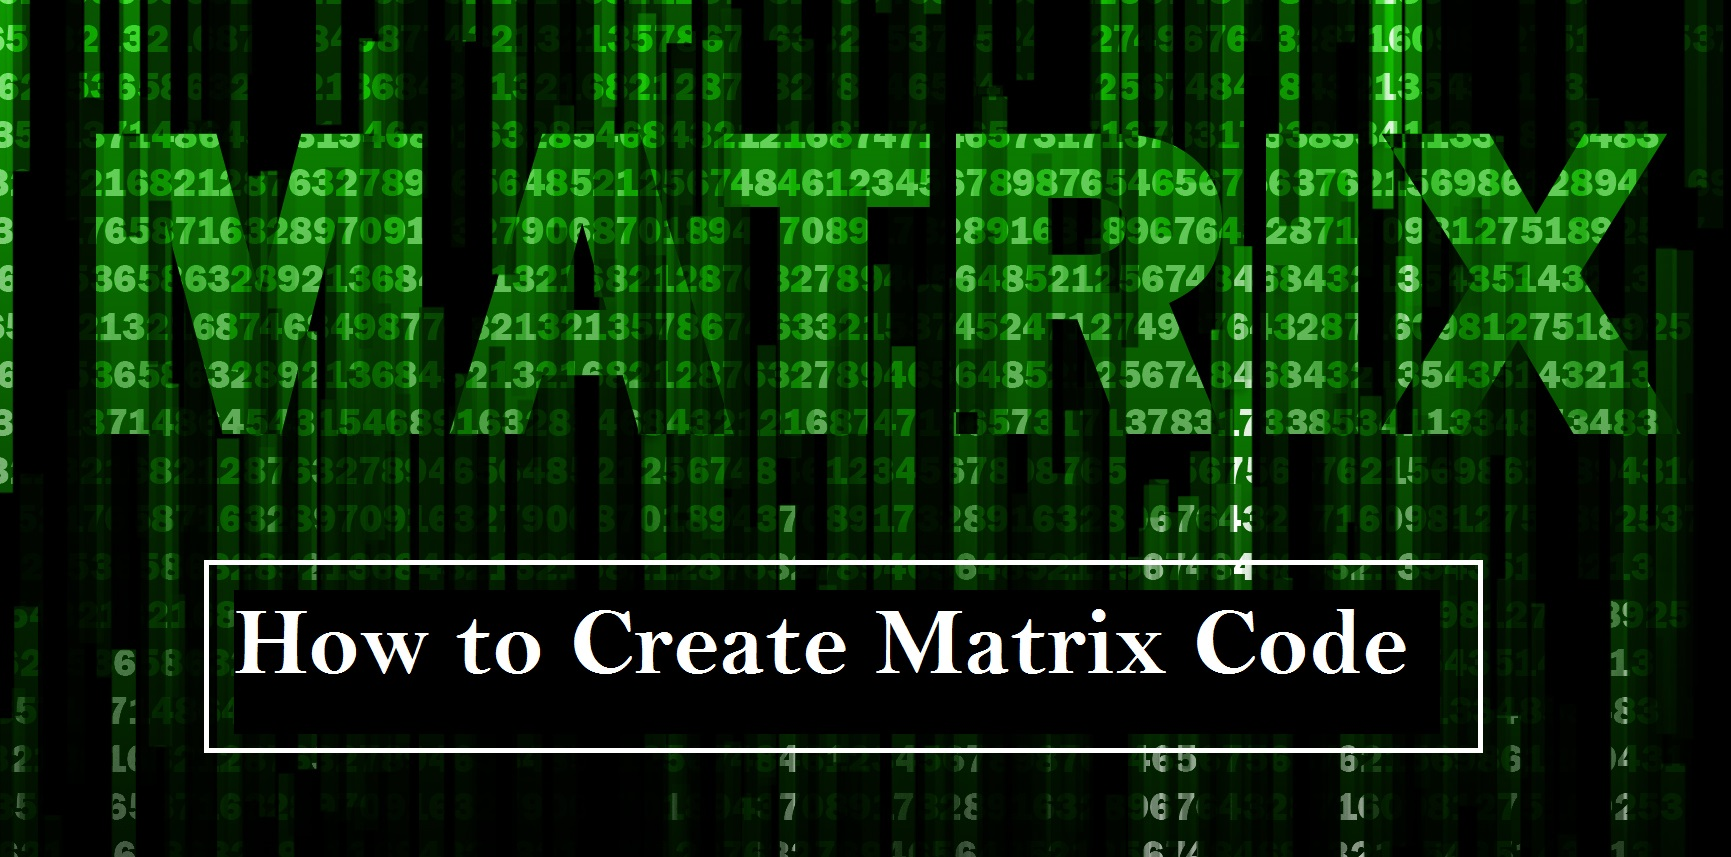 How to create Matrix code by using notepad